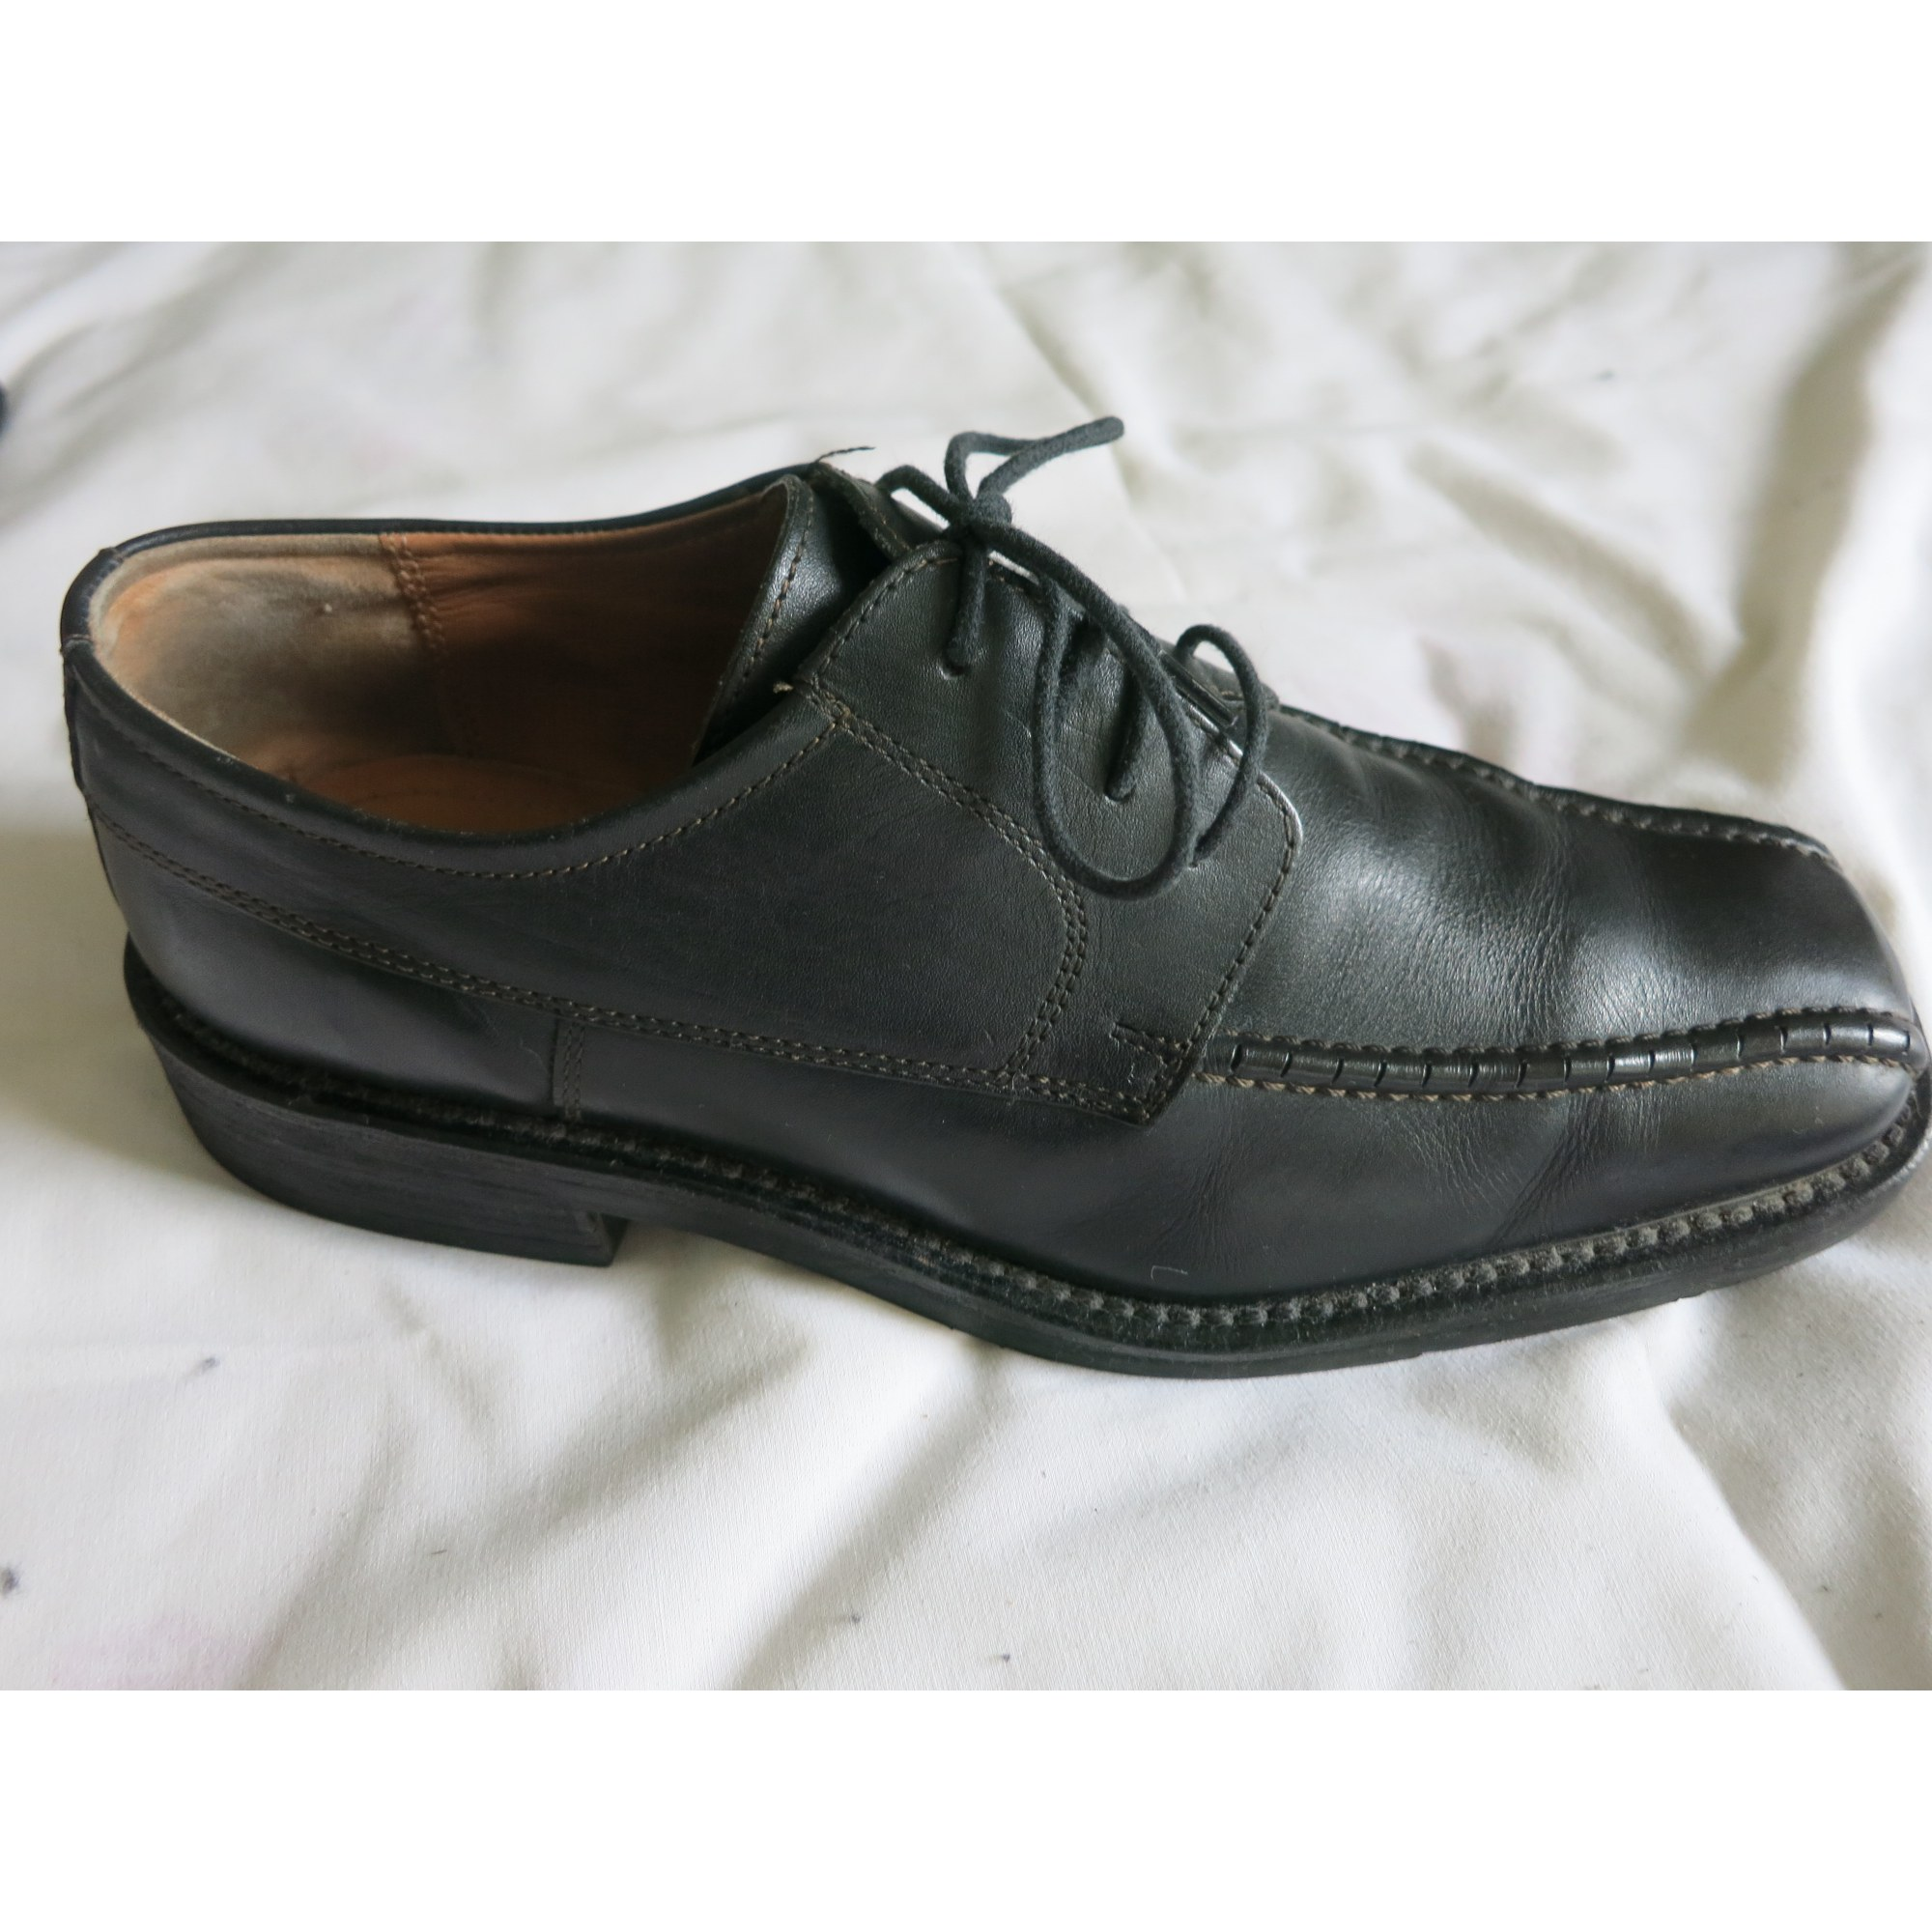 chaussures hommes tony raff,collection chaussures tony